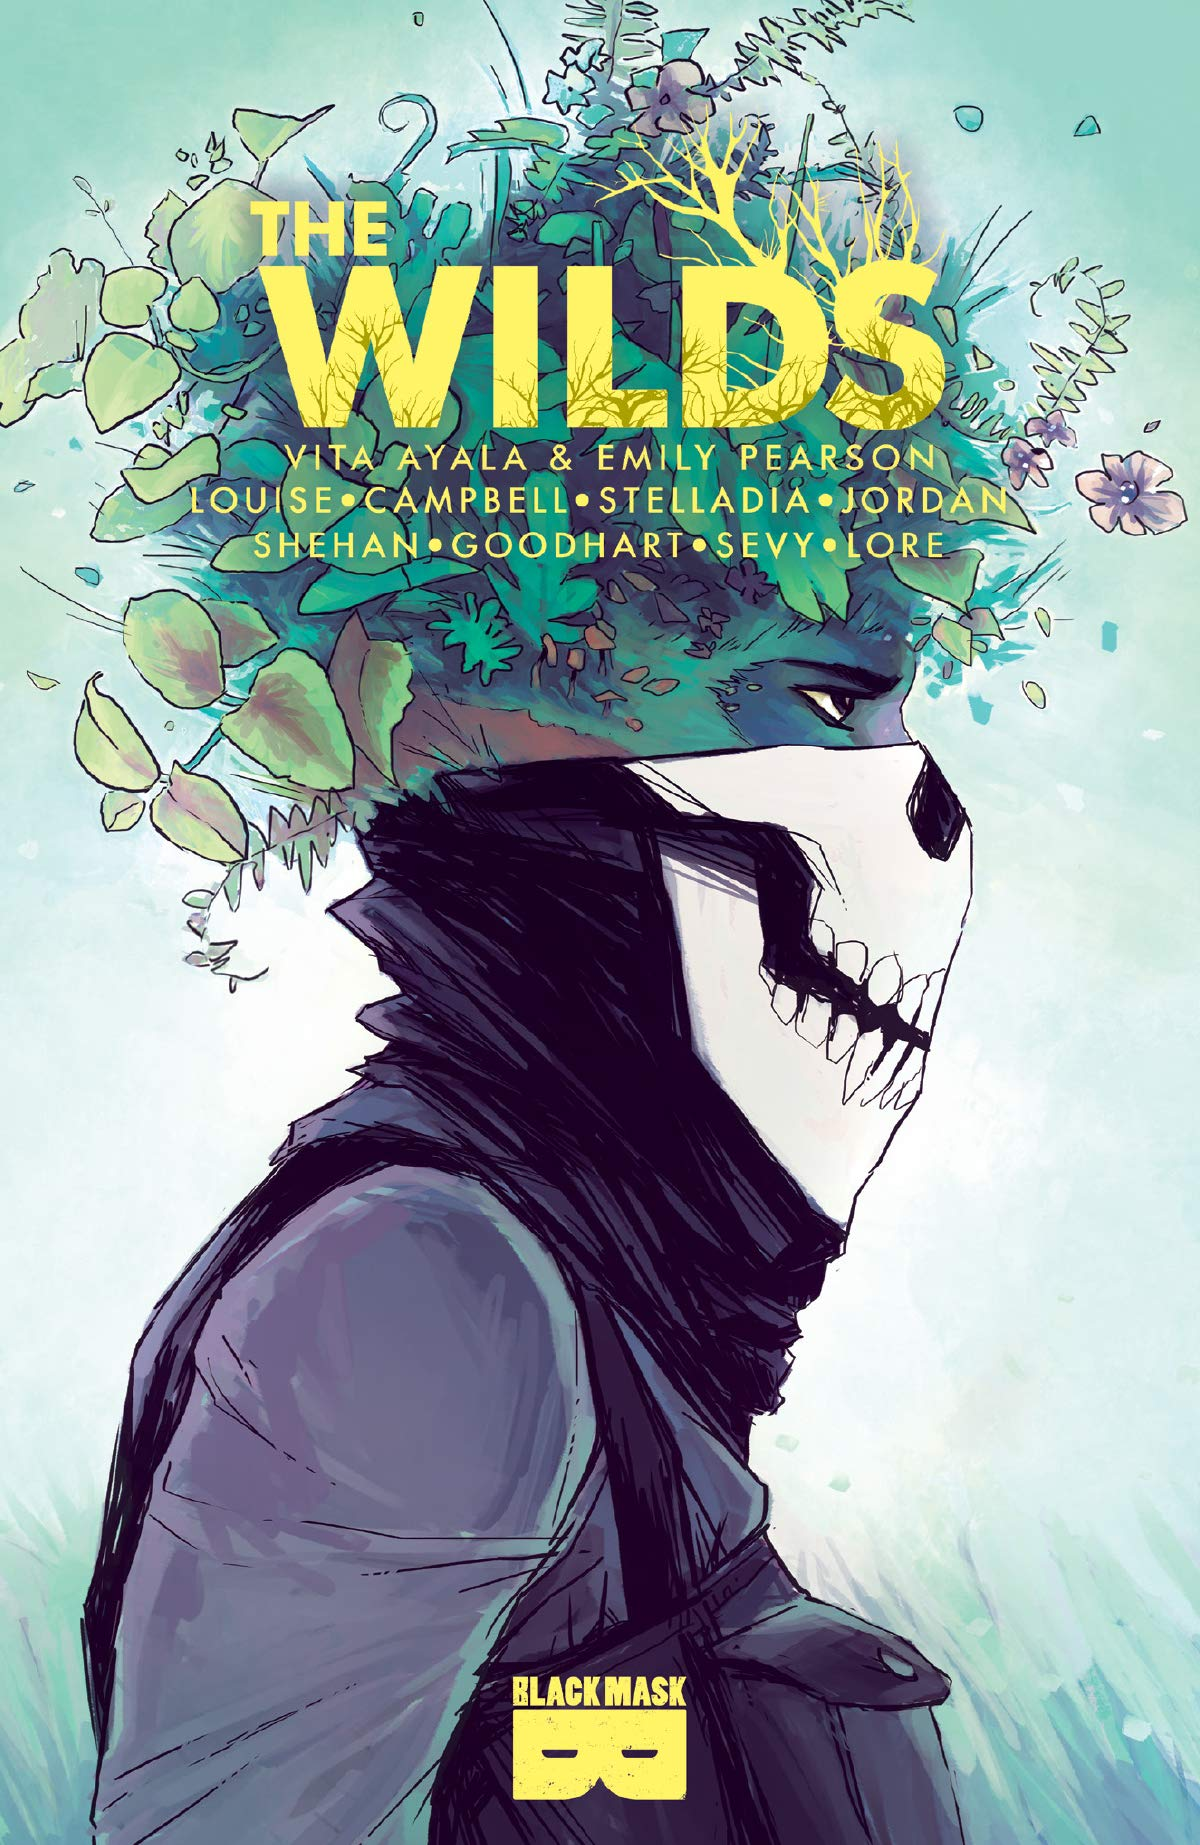 The 100 Best Comics of the Decade: The Wilds